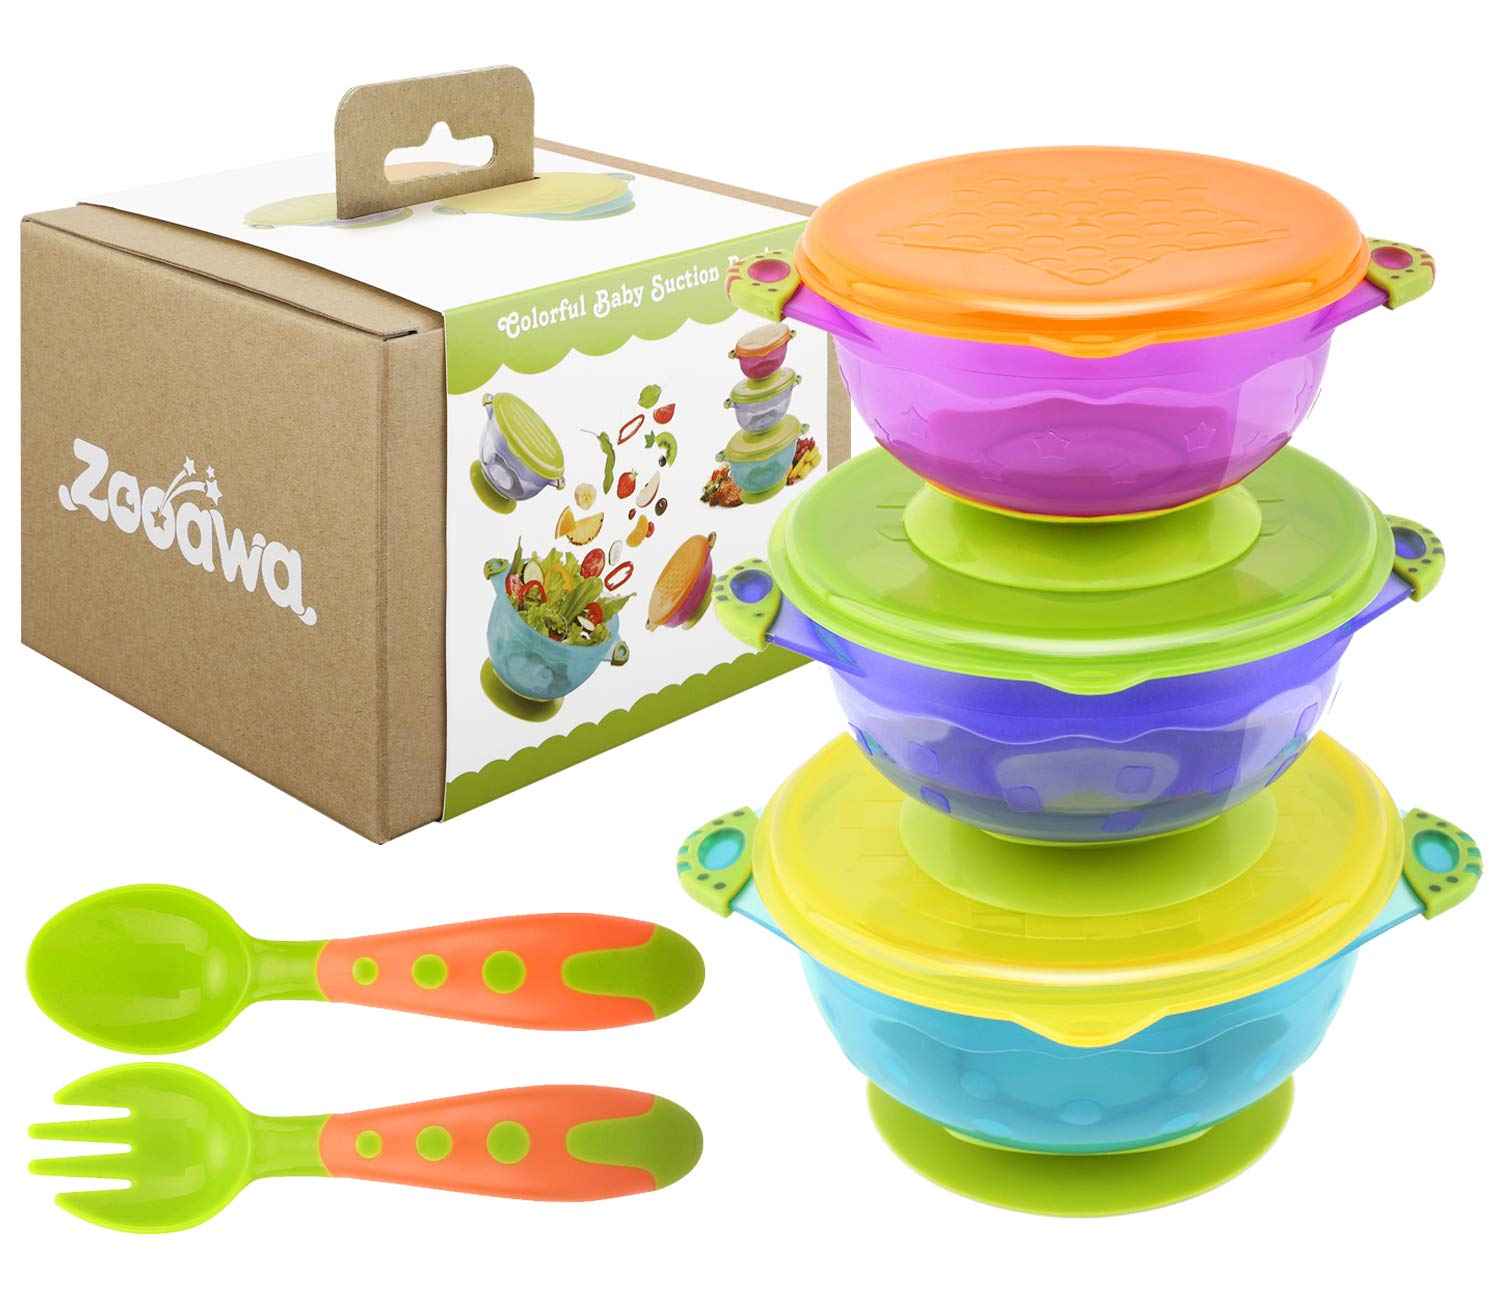 Zooawa Baby Suction Bowls + Fork Spoon Set, 3-Pack Different Size Nonslip Spill Proof Feeding Bowls with Feeding Spoon and Fork Cutlery Travel Set Training Utensils for Infant Toddler, BPA-Free by Zooawa